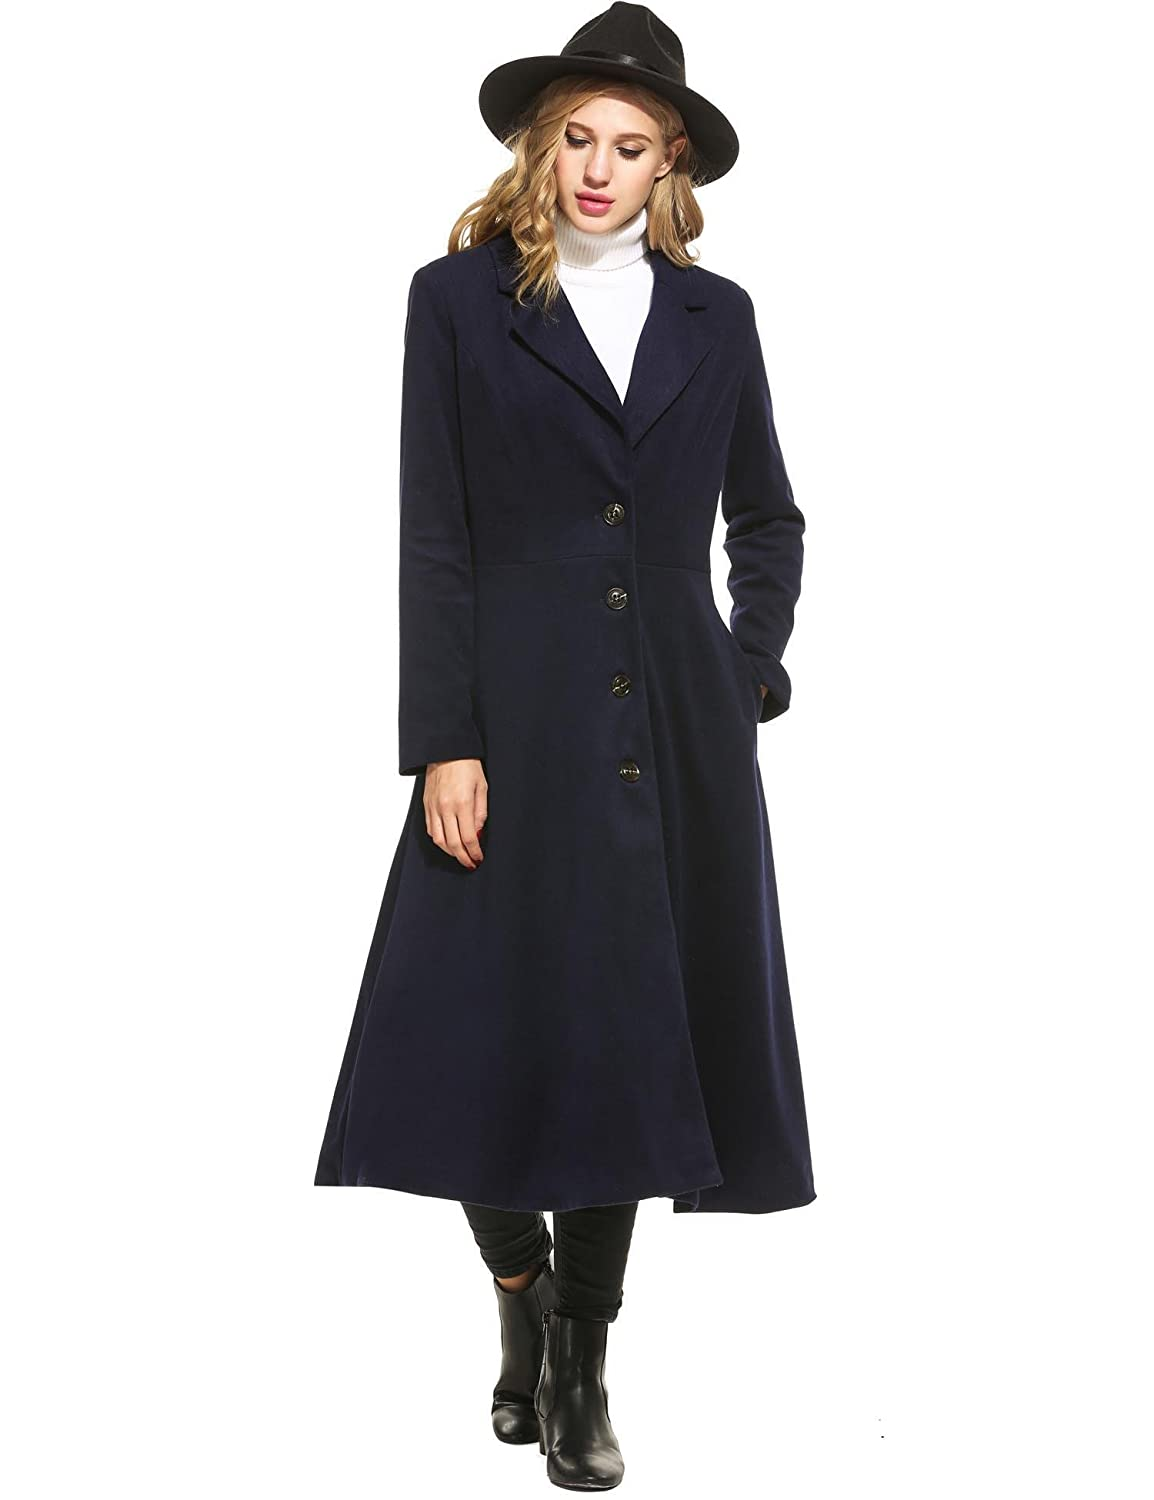 Vintage Coats & Jackets | Retro Coats and Jackets Mofavor Women Long Trench Coat Single Breasted Casual Swing Coat Overcoat Wool Pea Coat $55.89 AT vintagedancer.com